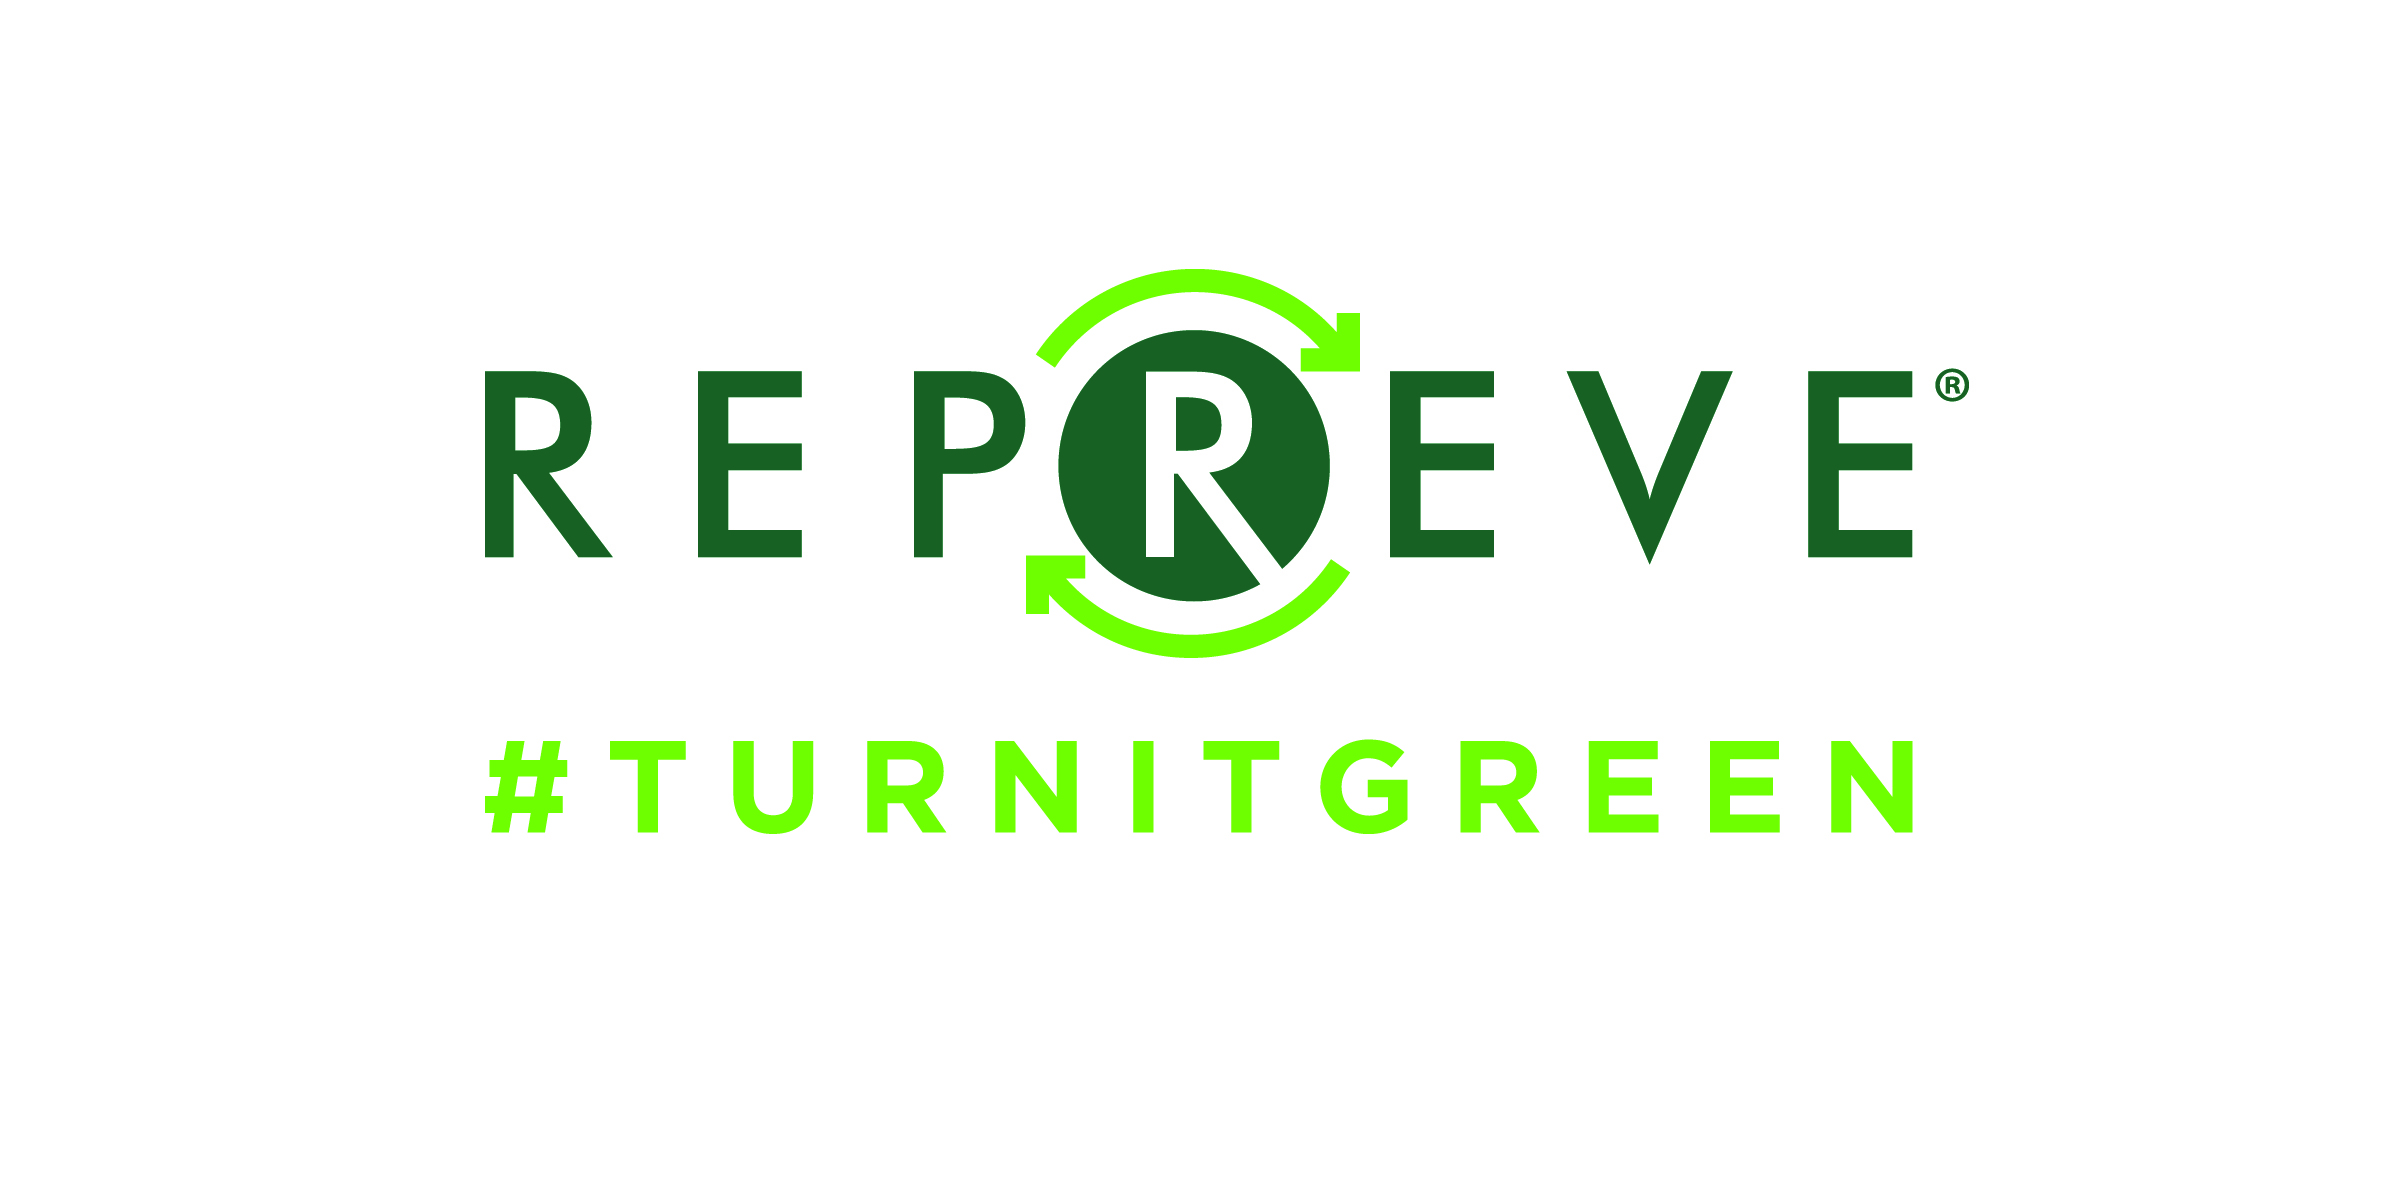 Turn It Green With REPREVE Recycled Plastic Bottle Products